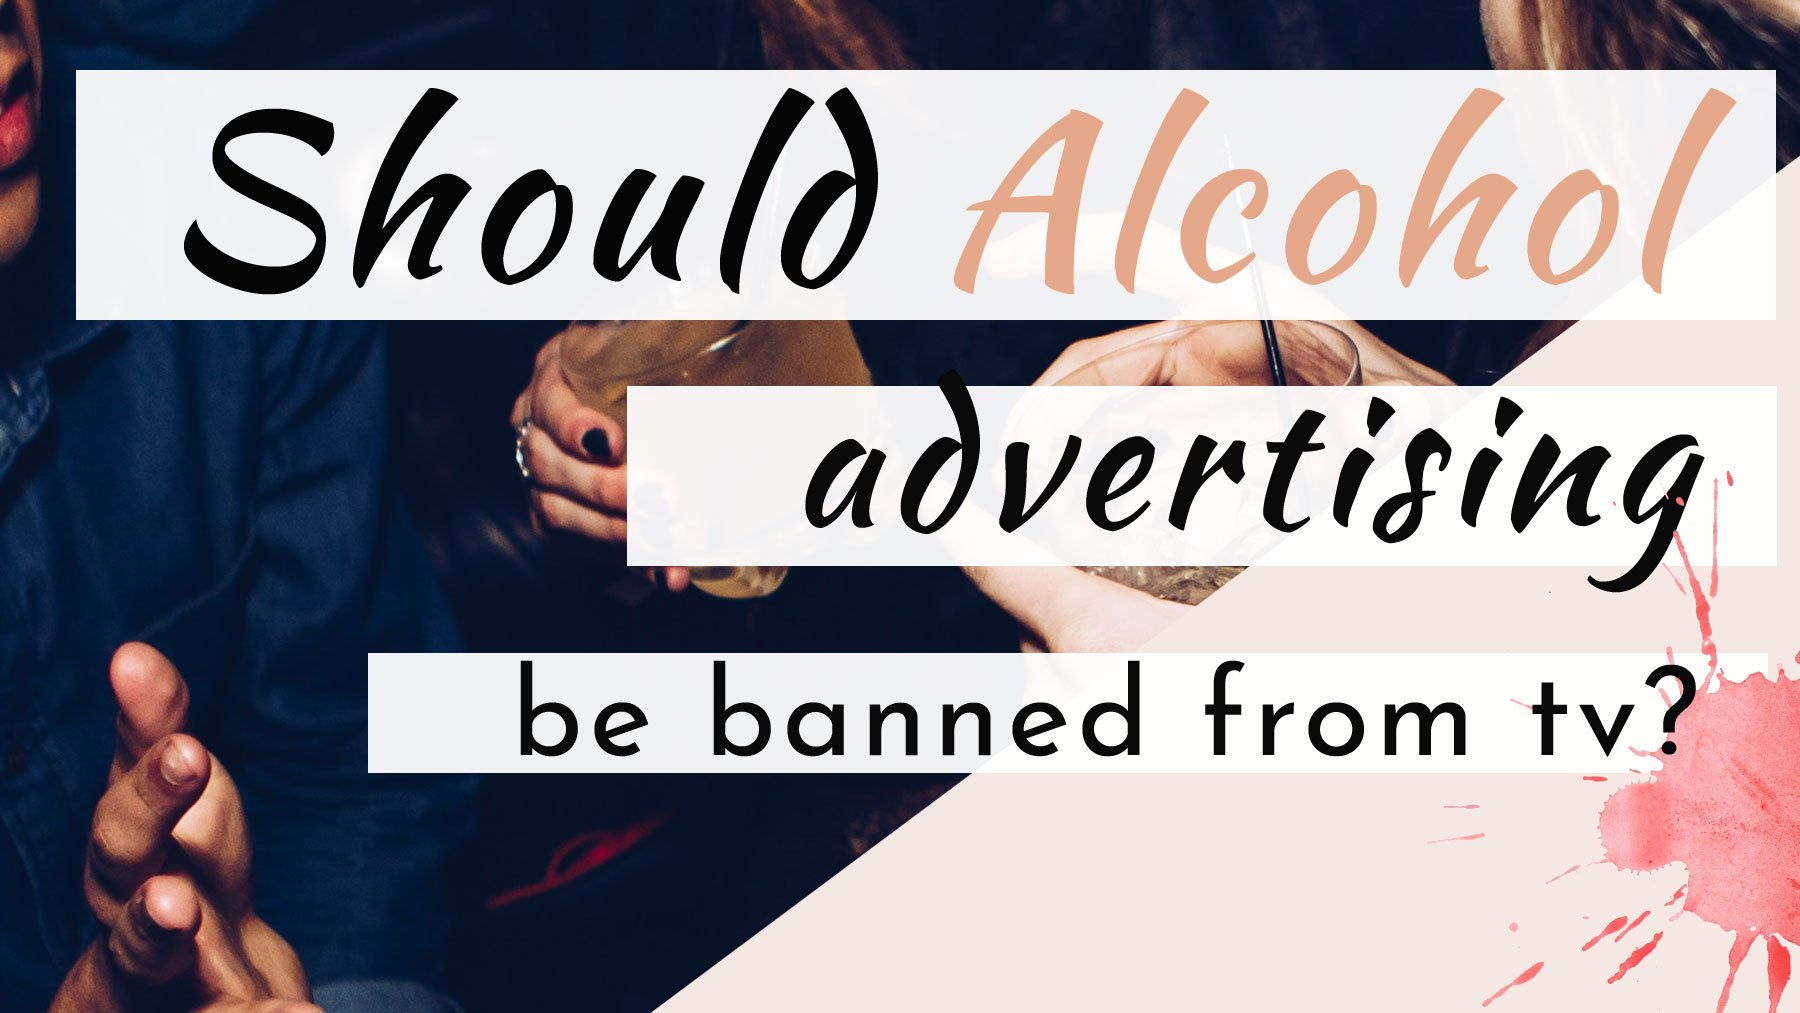 Should Alcohol Advertising be Banned From TV